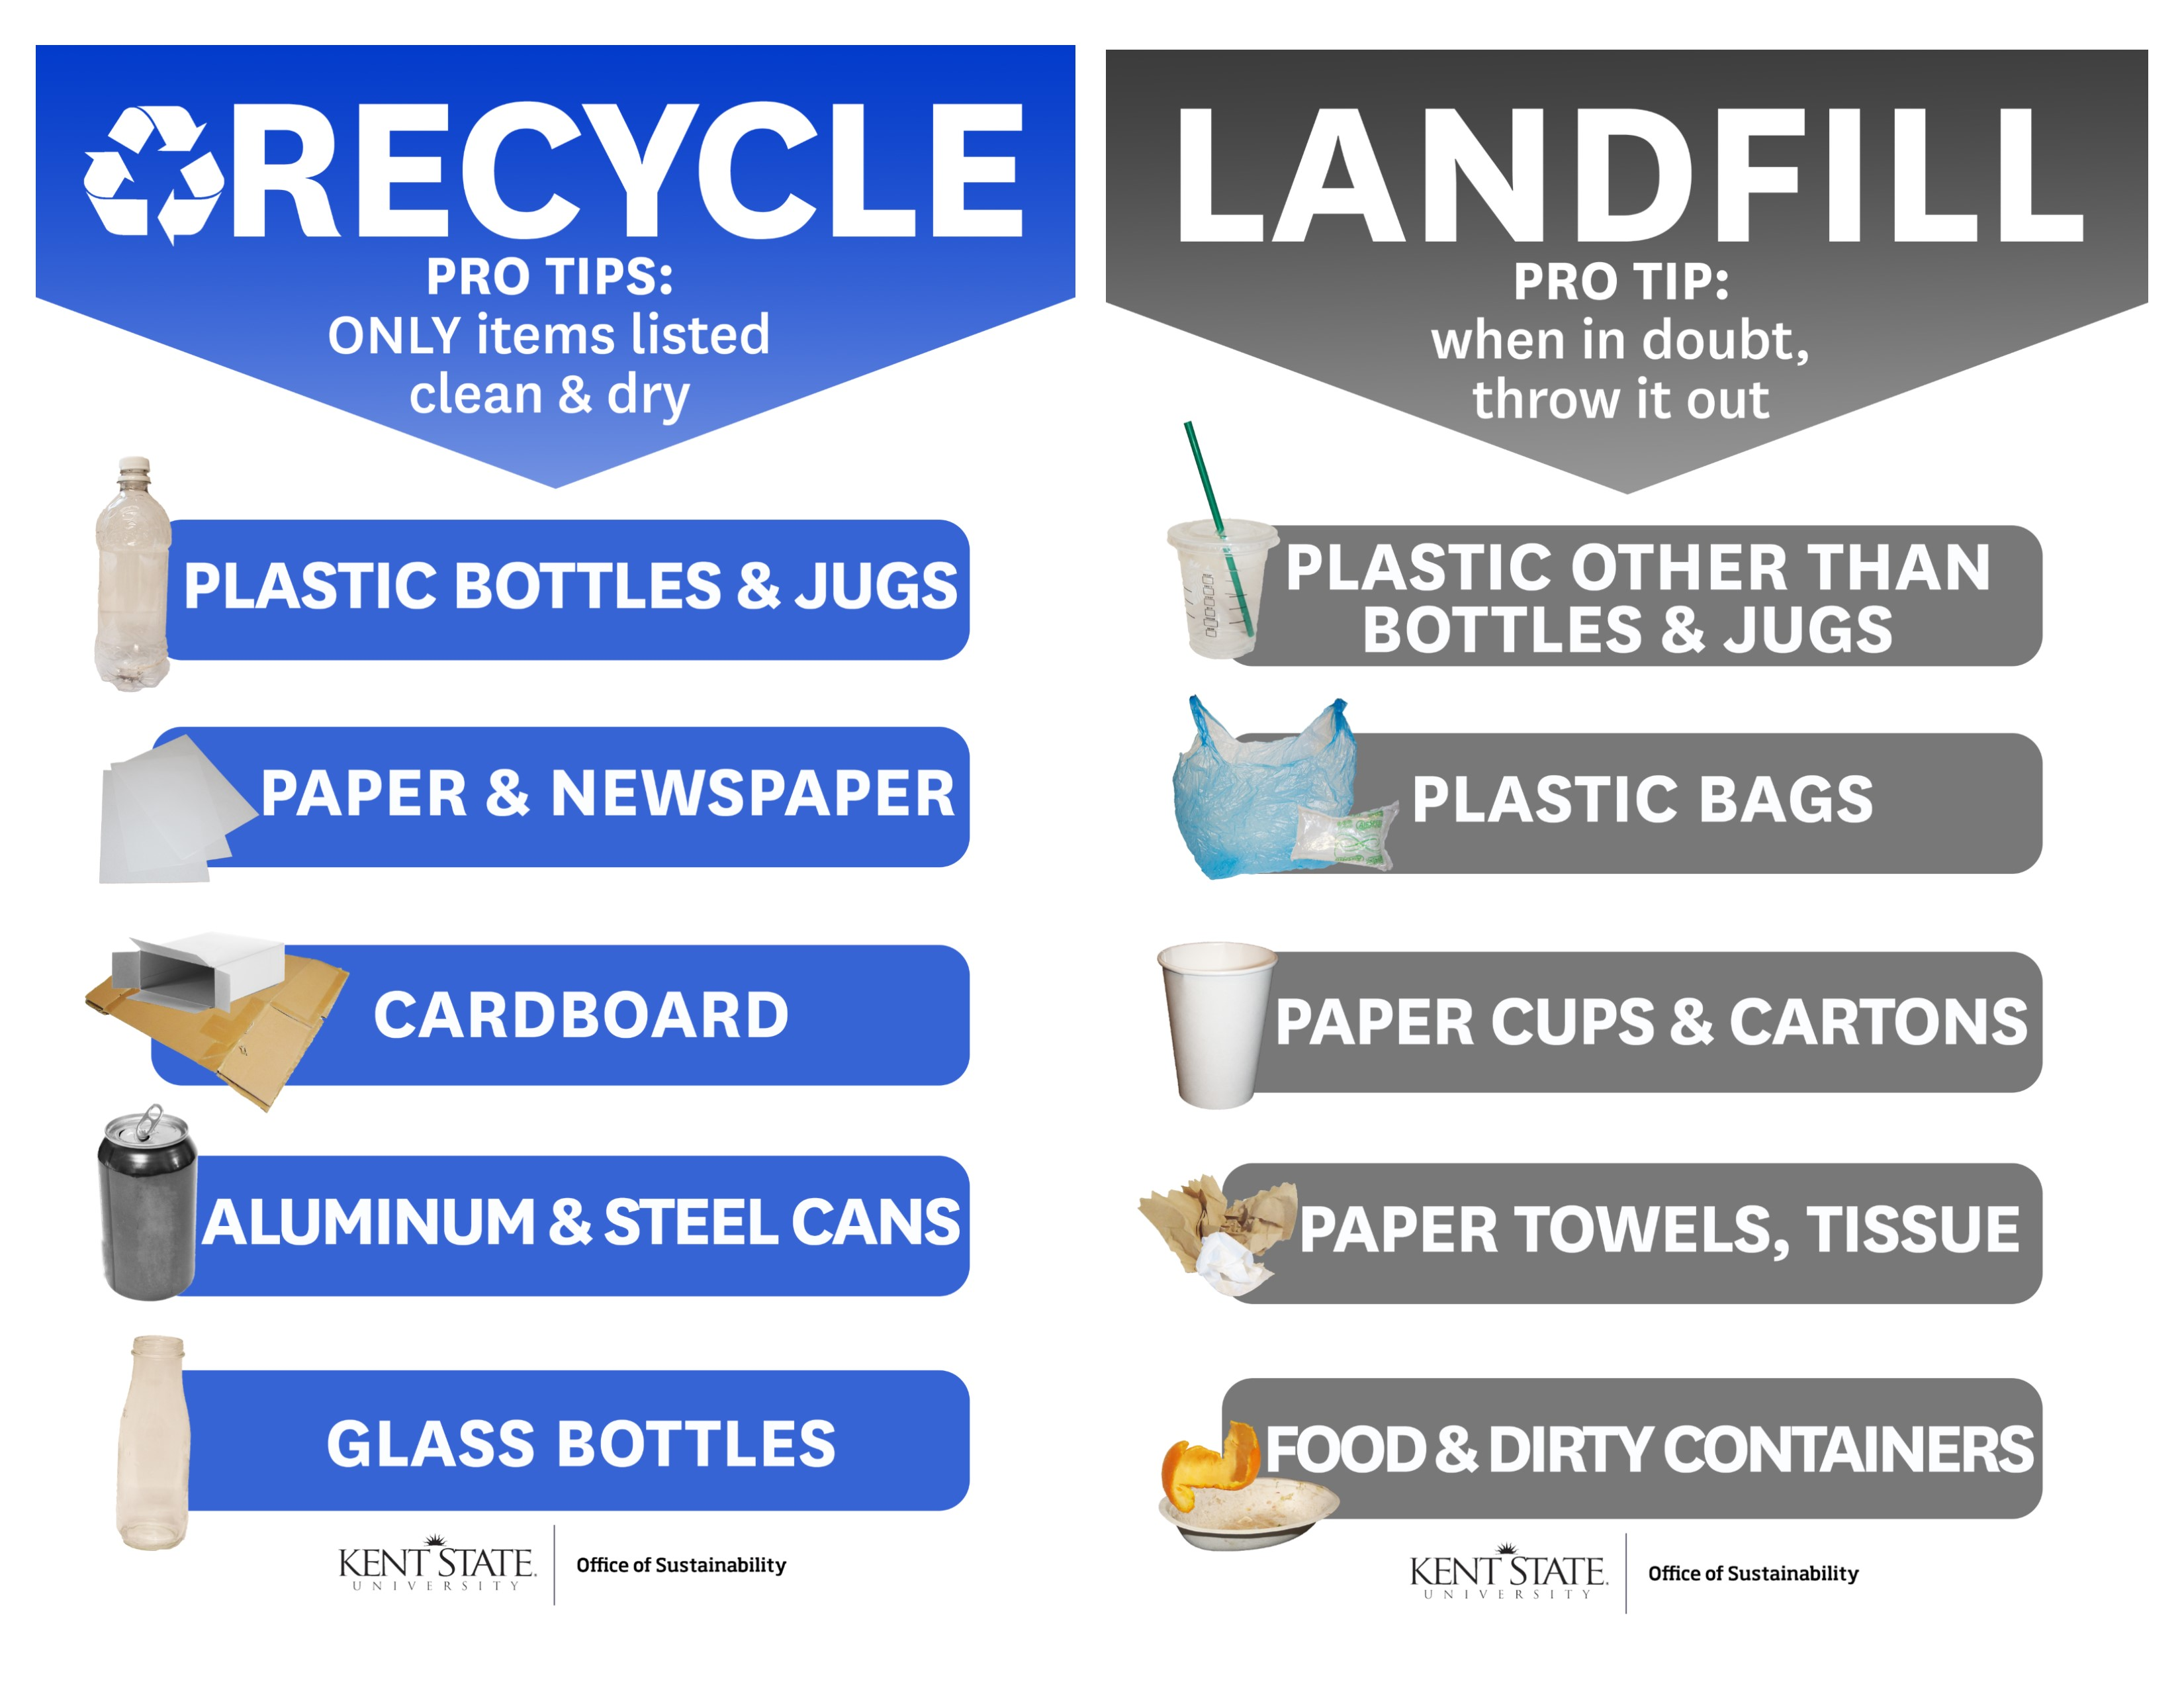 Kent State Recycling Landfill Guide 2020